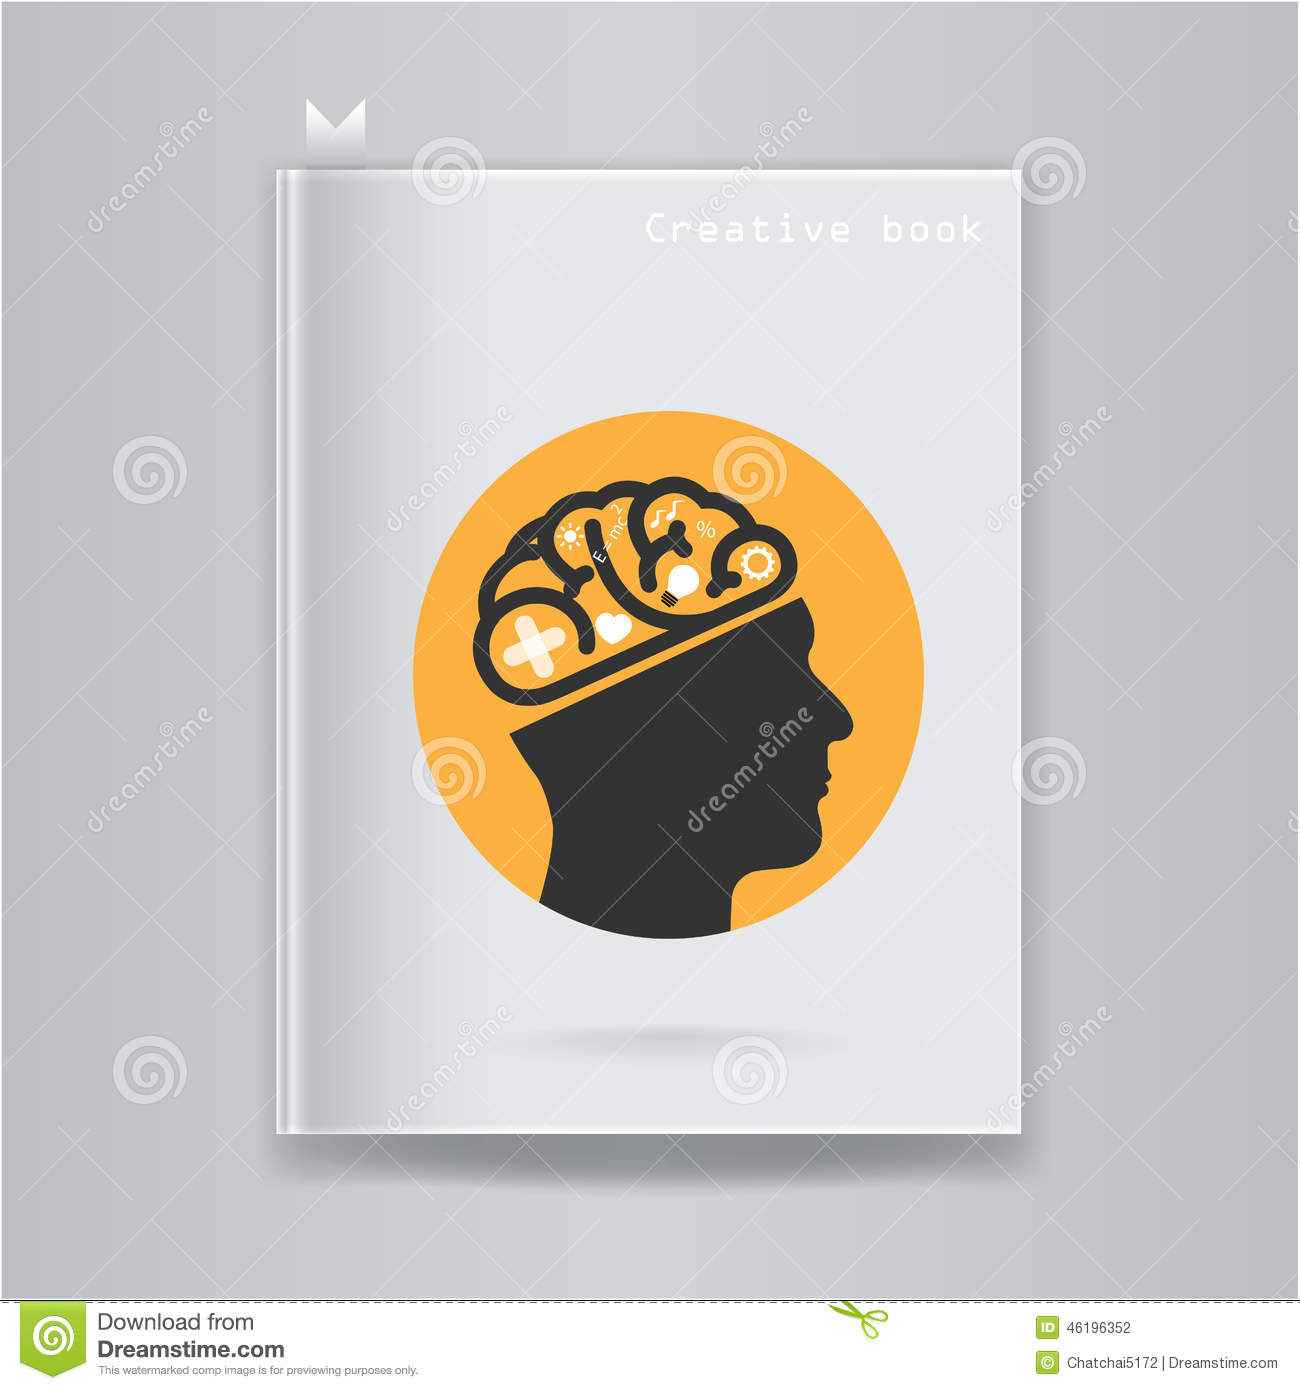 Blank Book Cover Vector Illustration Free ~ Creative brain idea concept on blank book cover stock